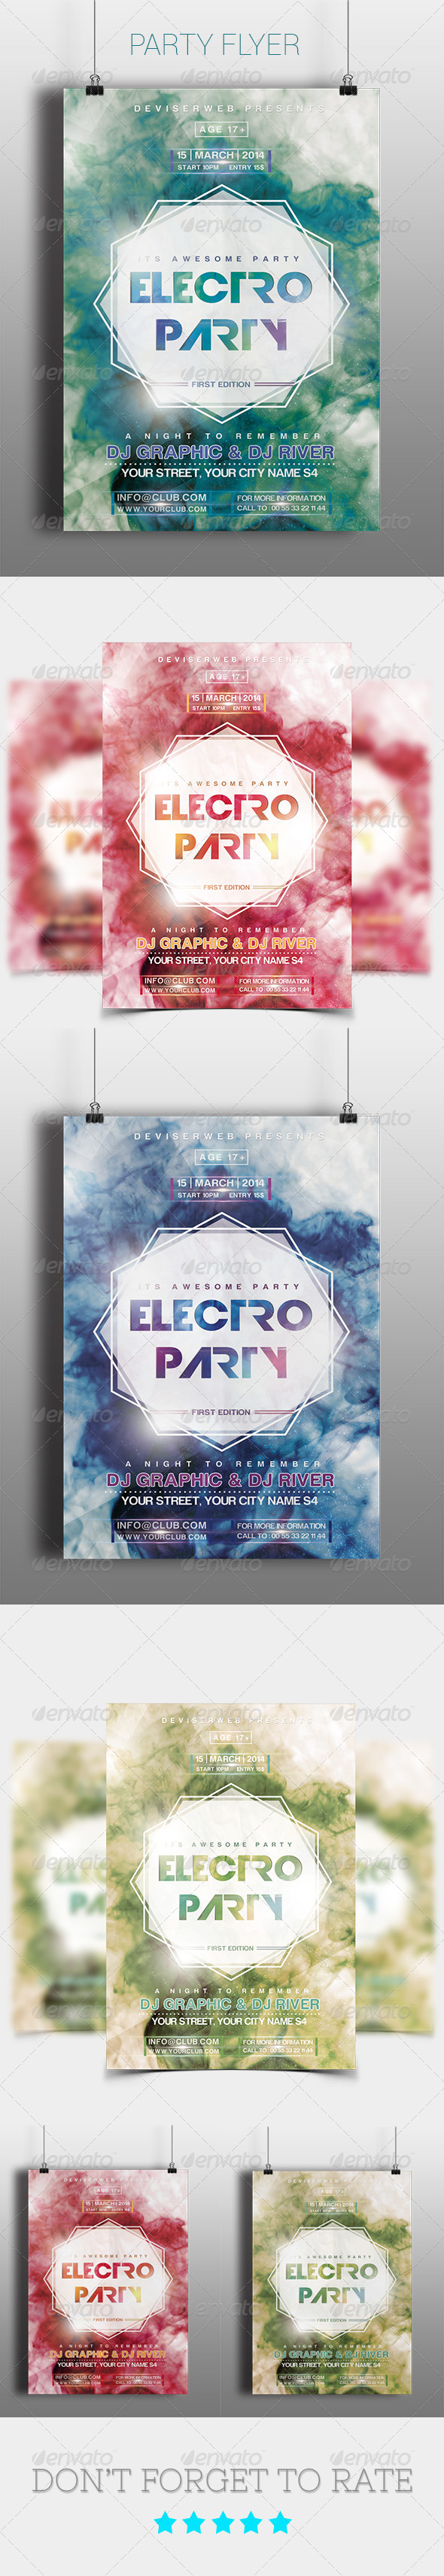 Futuristic Electro Party Flyer Templates